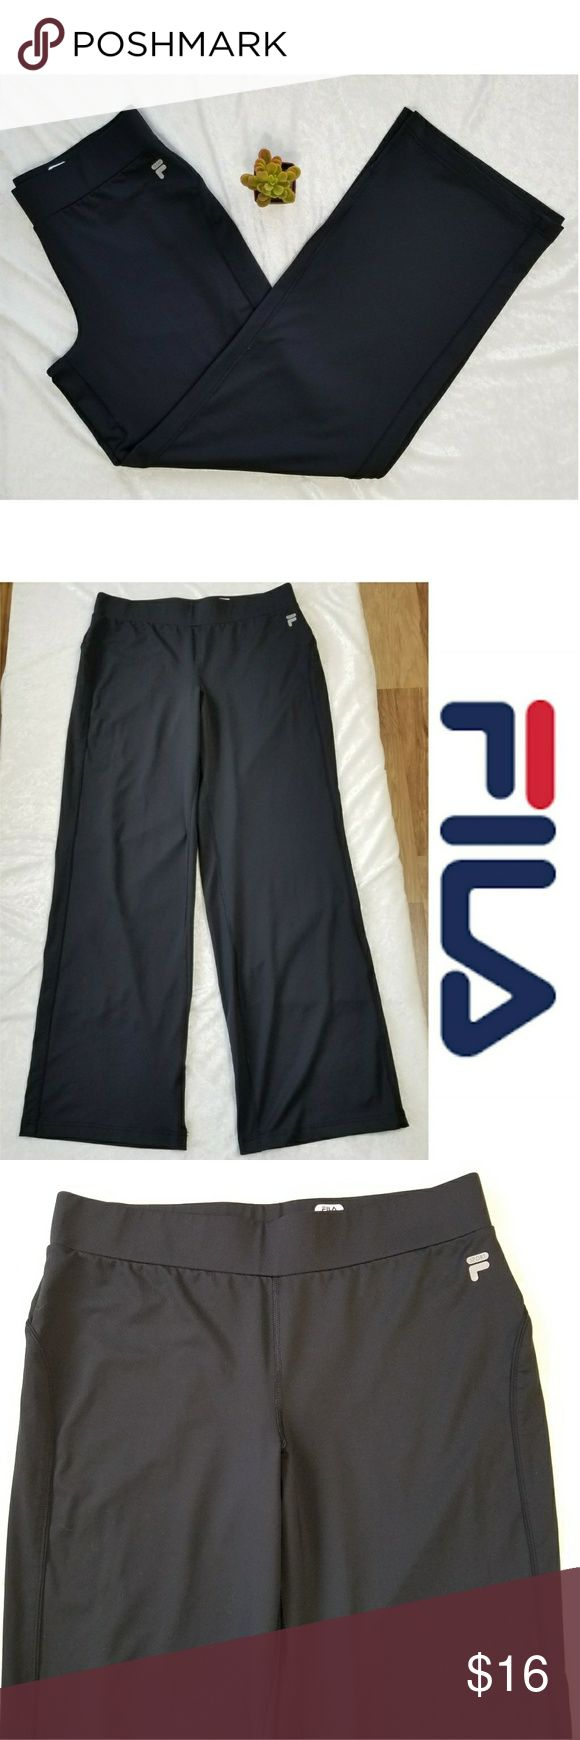 "EUC FILA Black Straight leg Workout Pants FILA Black Straight leg Workout Pants Approx.  Laid flat Measurements: Waist - 16"" Inseam - 31"" Details: - 88% polyester,  12% spandex  - smooth stretch jersey - flat seams help reduce chafing - straight leg opening  - elastic waistband  - in EXCELLENT pre-owned CONDITION.  No visible flaws or defects.  Smoke-free home. Feel free to ask. Fila Pants"